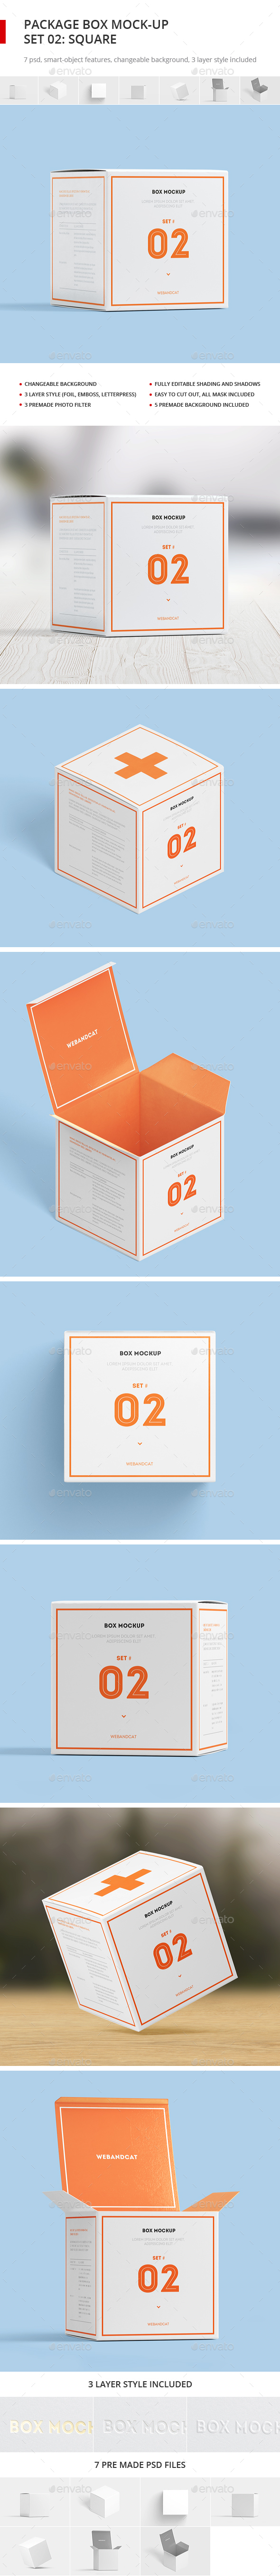 Package Box Mock-up, Set 2: Square Box